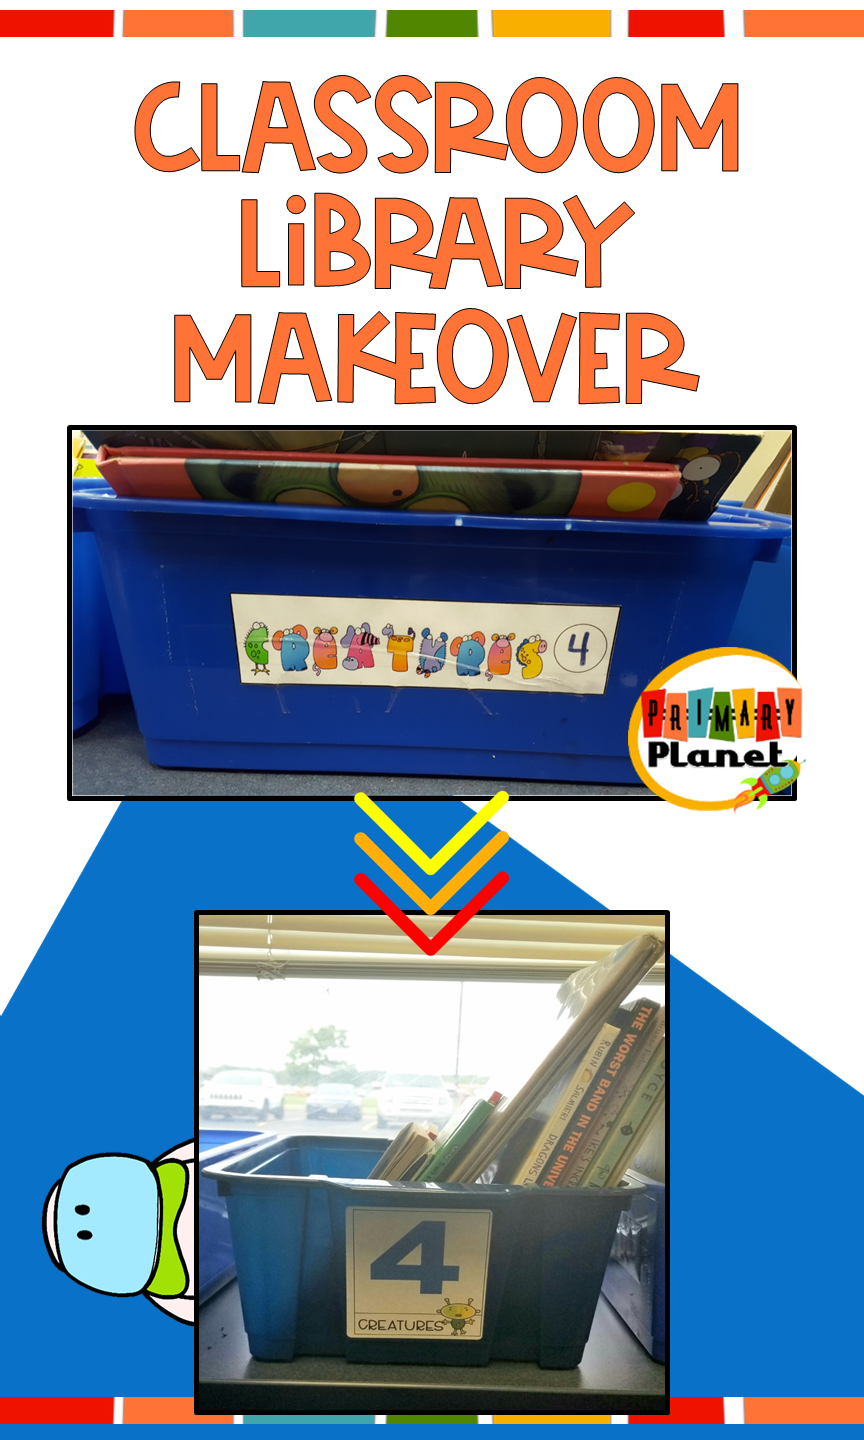 Come and check out my classroom library makeover complete with new book storage: bookshelves! This blog post will give you some great organization ideas for your elementary classroom library!  This blog post also includes a classroom library label freebie for your book bins or baskets that you don't want to miss! Pin it now so you don't lose this great information!  #classroomlibrary #librarylabels #freebie #primaryplanet